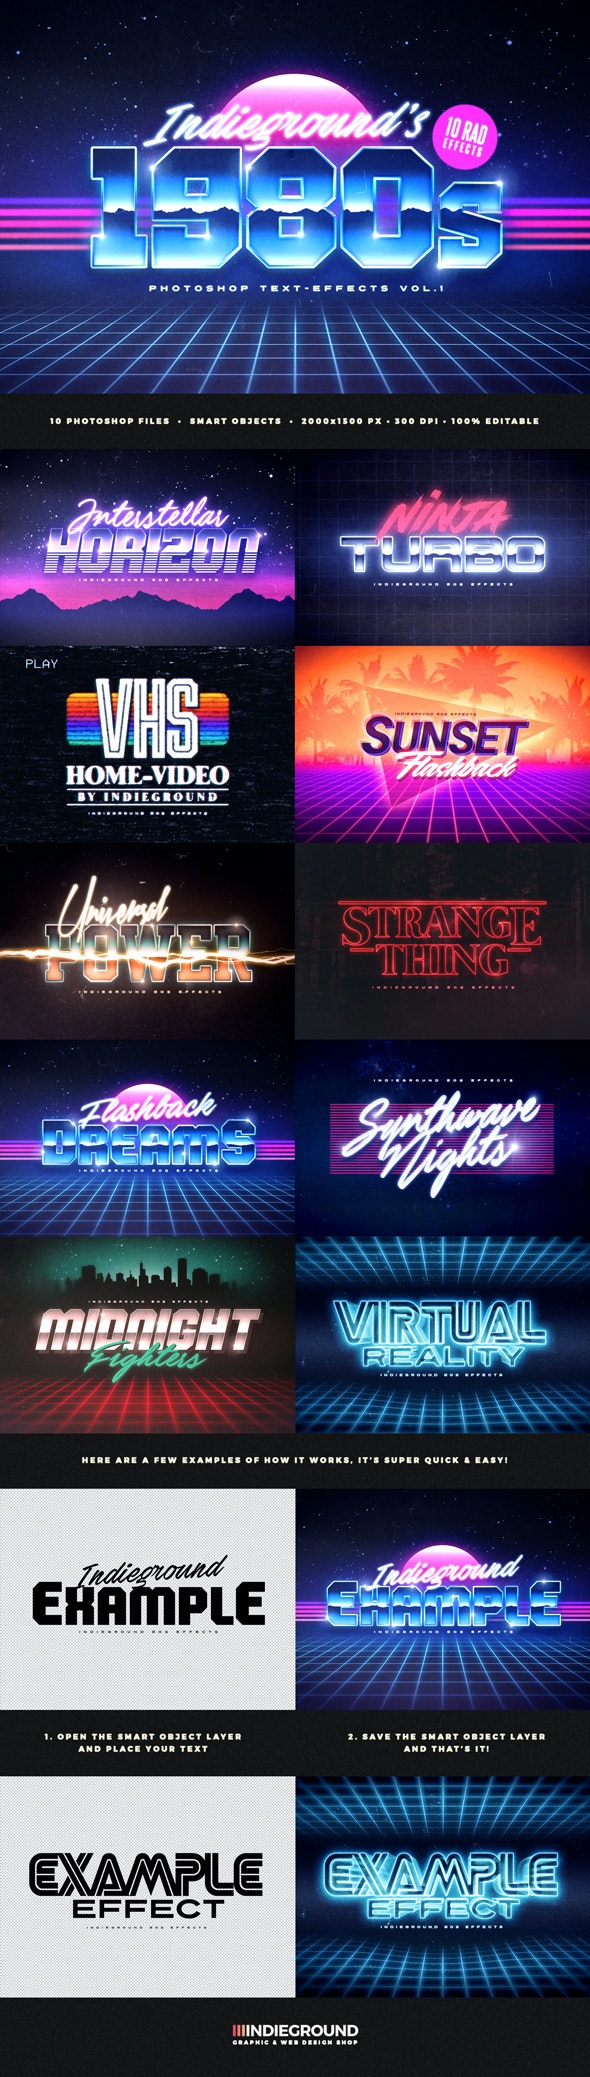 80s Text Effects - Text Effects Actions